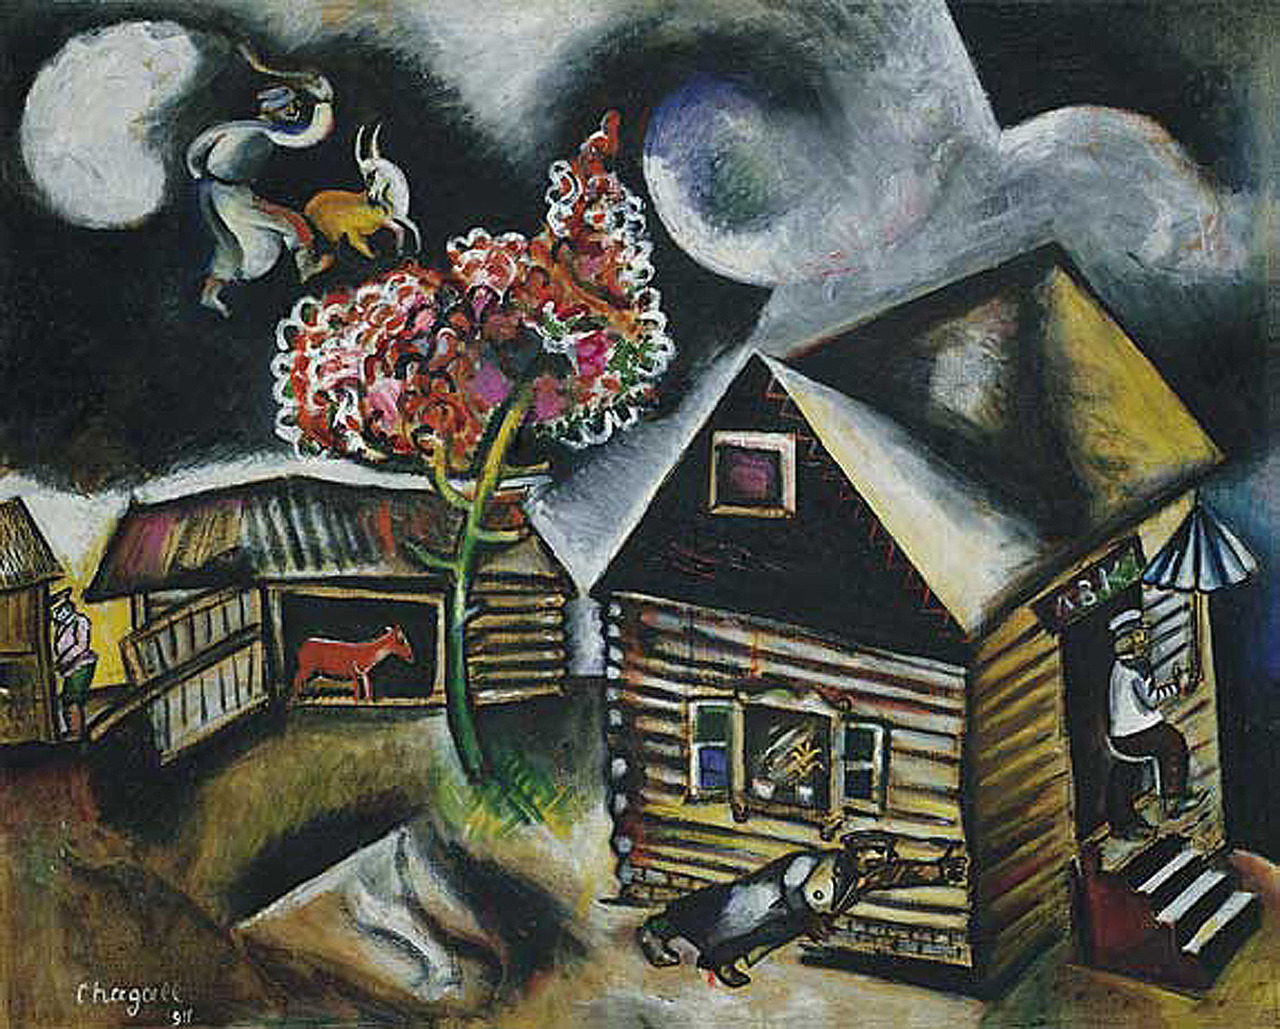 "Happy birthday Marc Chagall, born this day in Russia 1887. It was in Paris, surrounded by other artists, that he really began to develop his style. Though he was homesick and could not speak French, he later said, ""My art needed Paris like a tree needs water."" Chagall is known for bright and complex colors, and his fantastical images from Russian-Jewish folklore and his childhood: ghosts, livestock, weddings, fiddlers, scenes of his village Vitebsk, a couple floating in the sky, and fish."